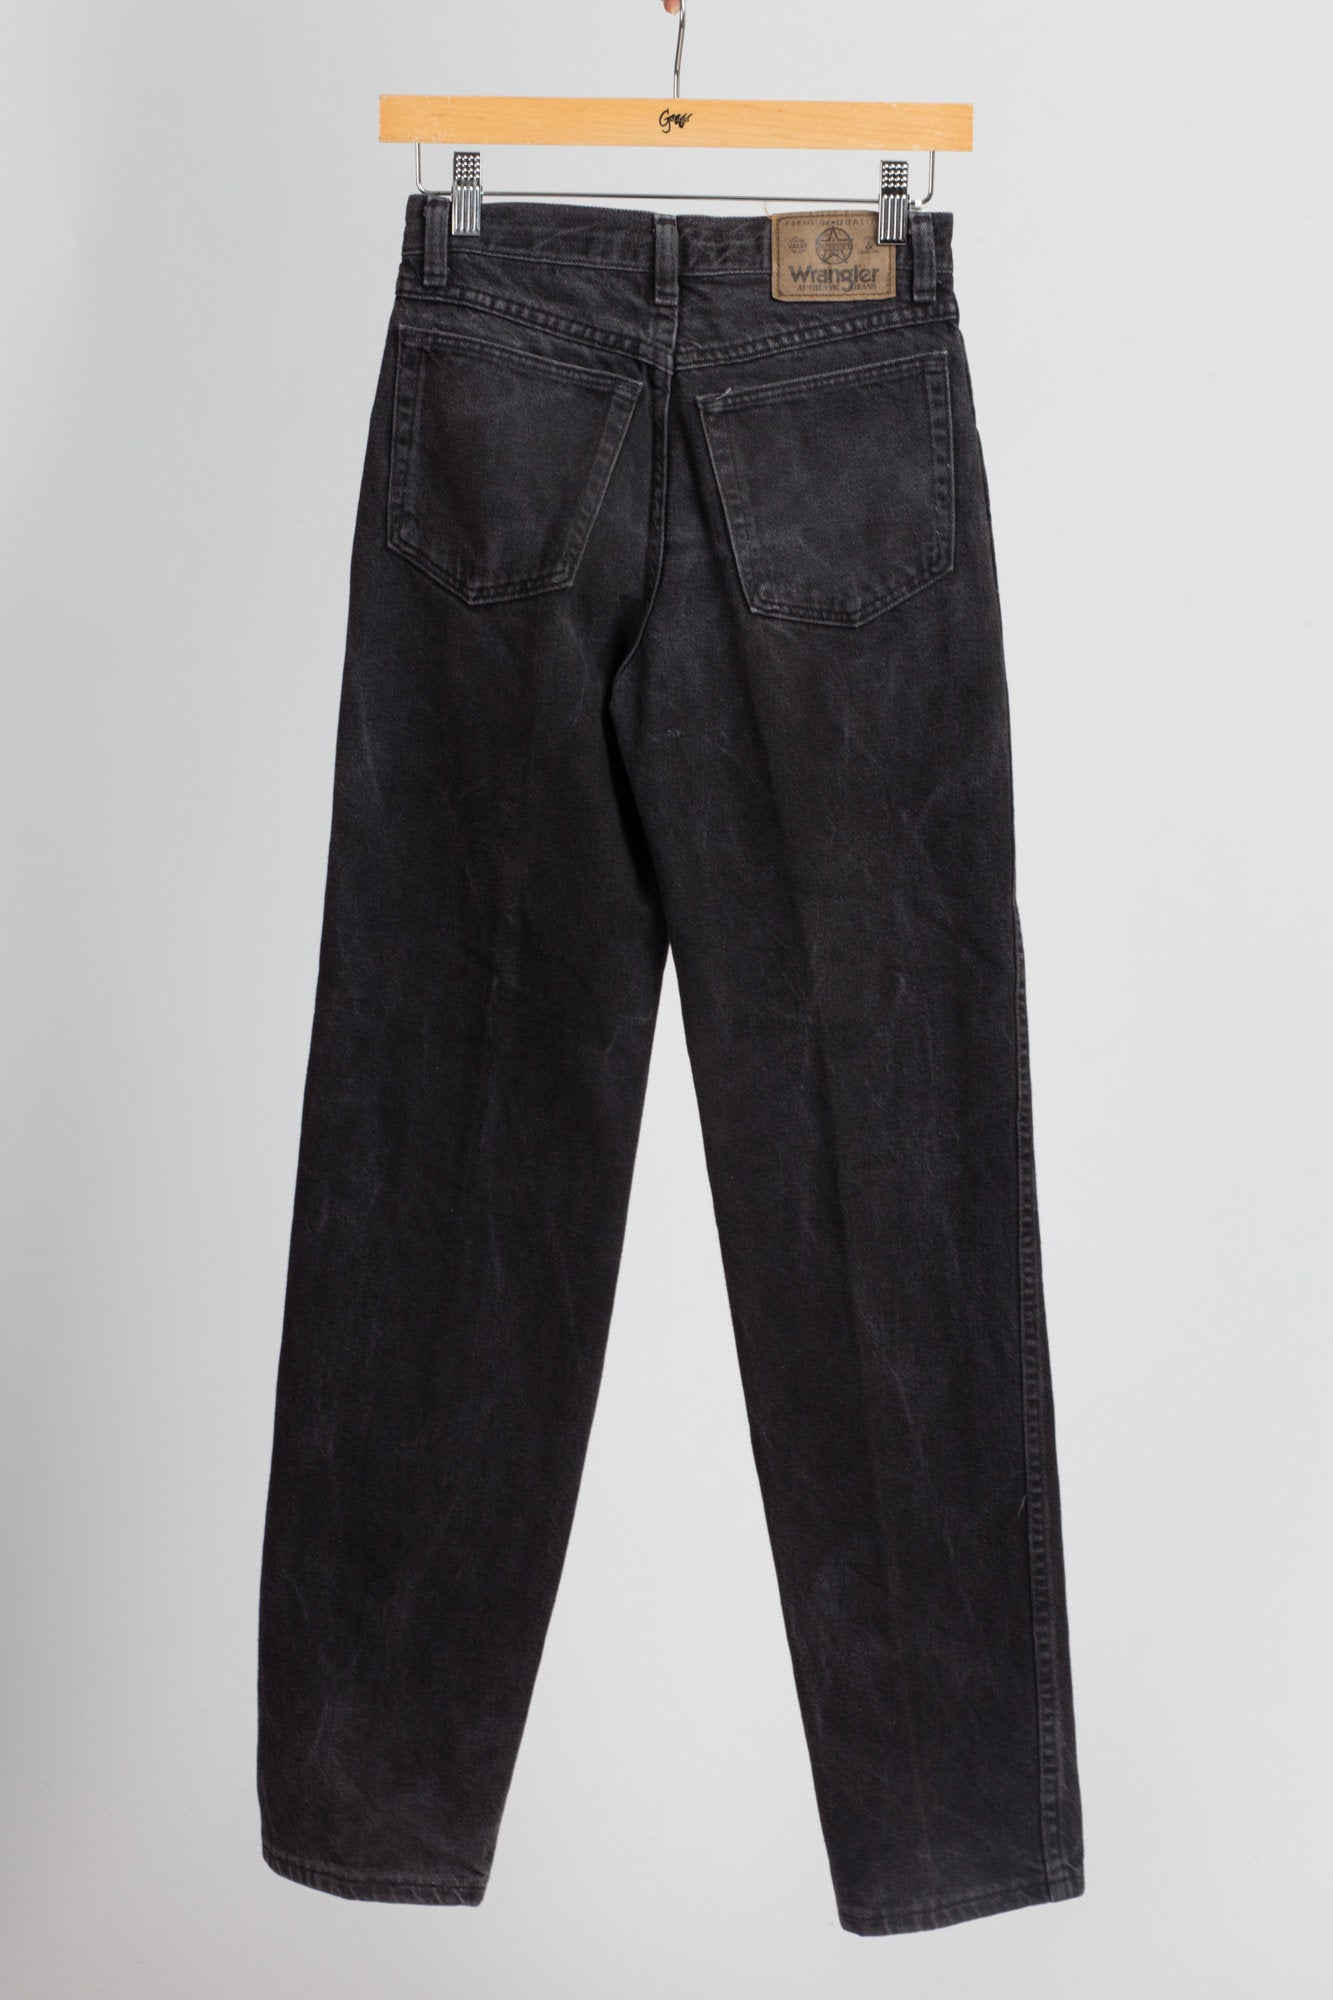 Vintage Wrangler Black Mid Rise Jeans - Extra Small